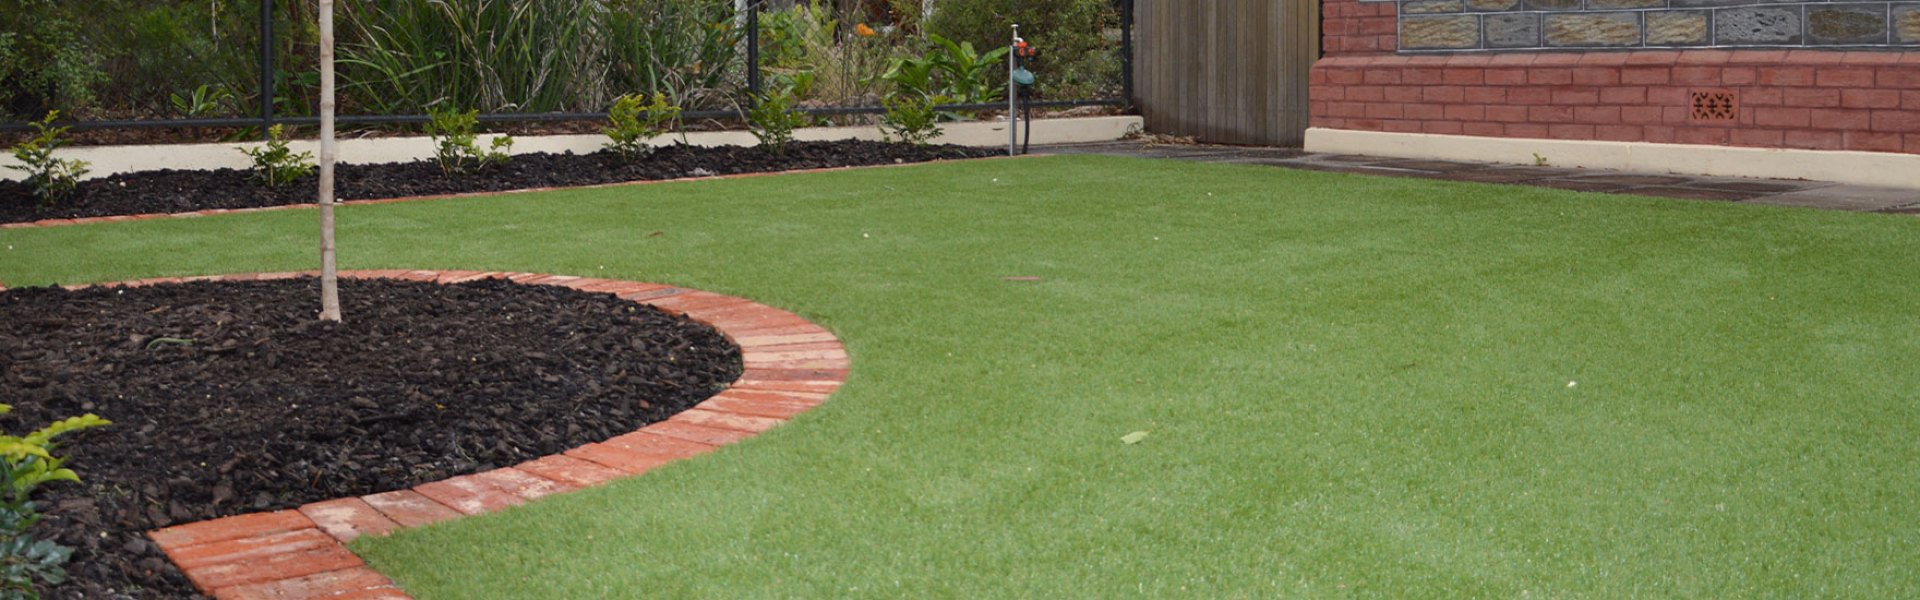 Lawn Adelaide | Lawn Installers Adelaide | Visual Landscape Gardening